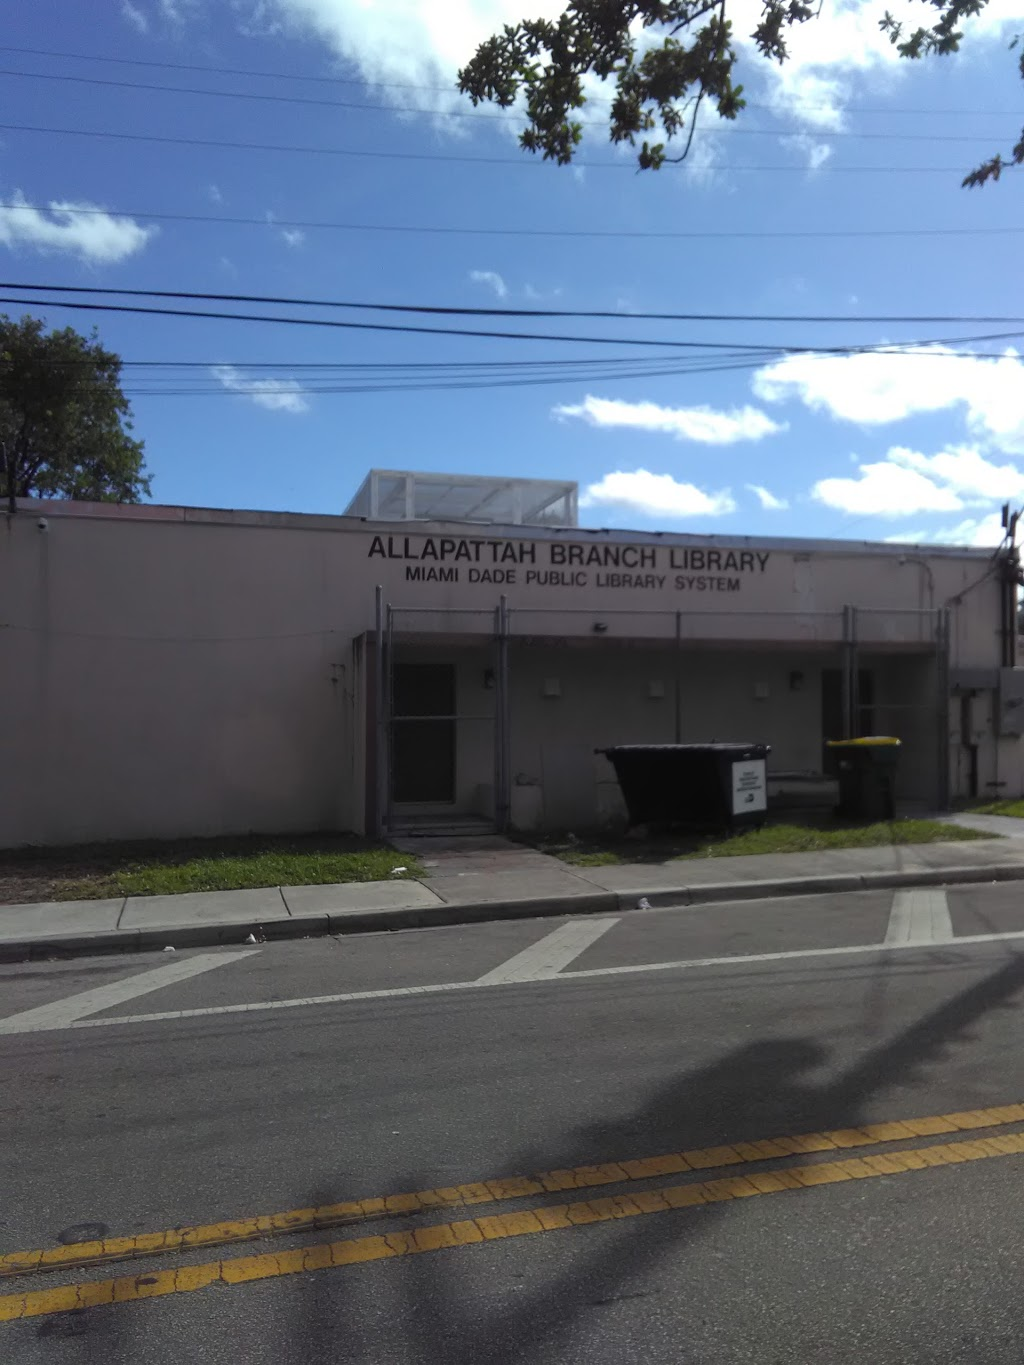 Allapattah Branch Library - library    Photo 10 of 10   Address: 1799 NW 35th St, Miami, FL 33142, USA   Phone: (305) 638-6086